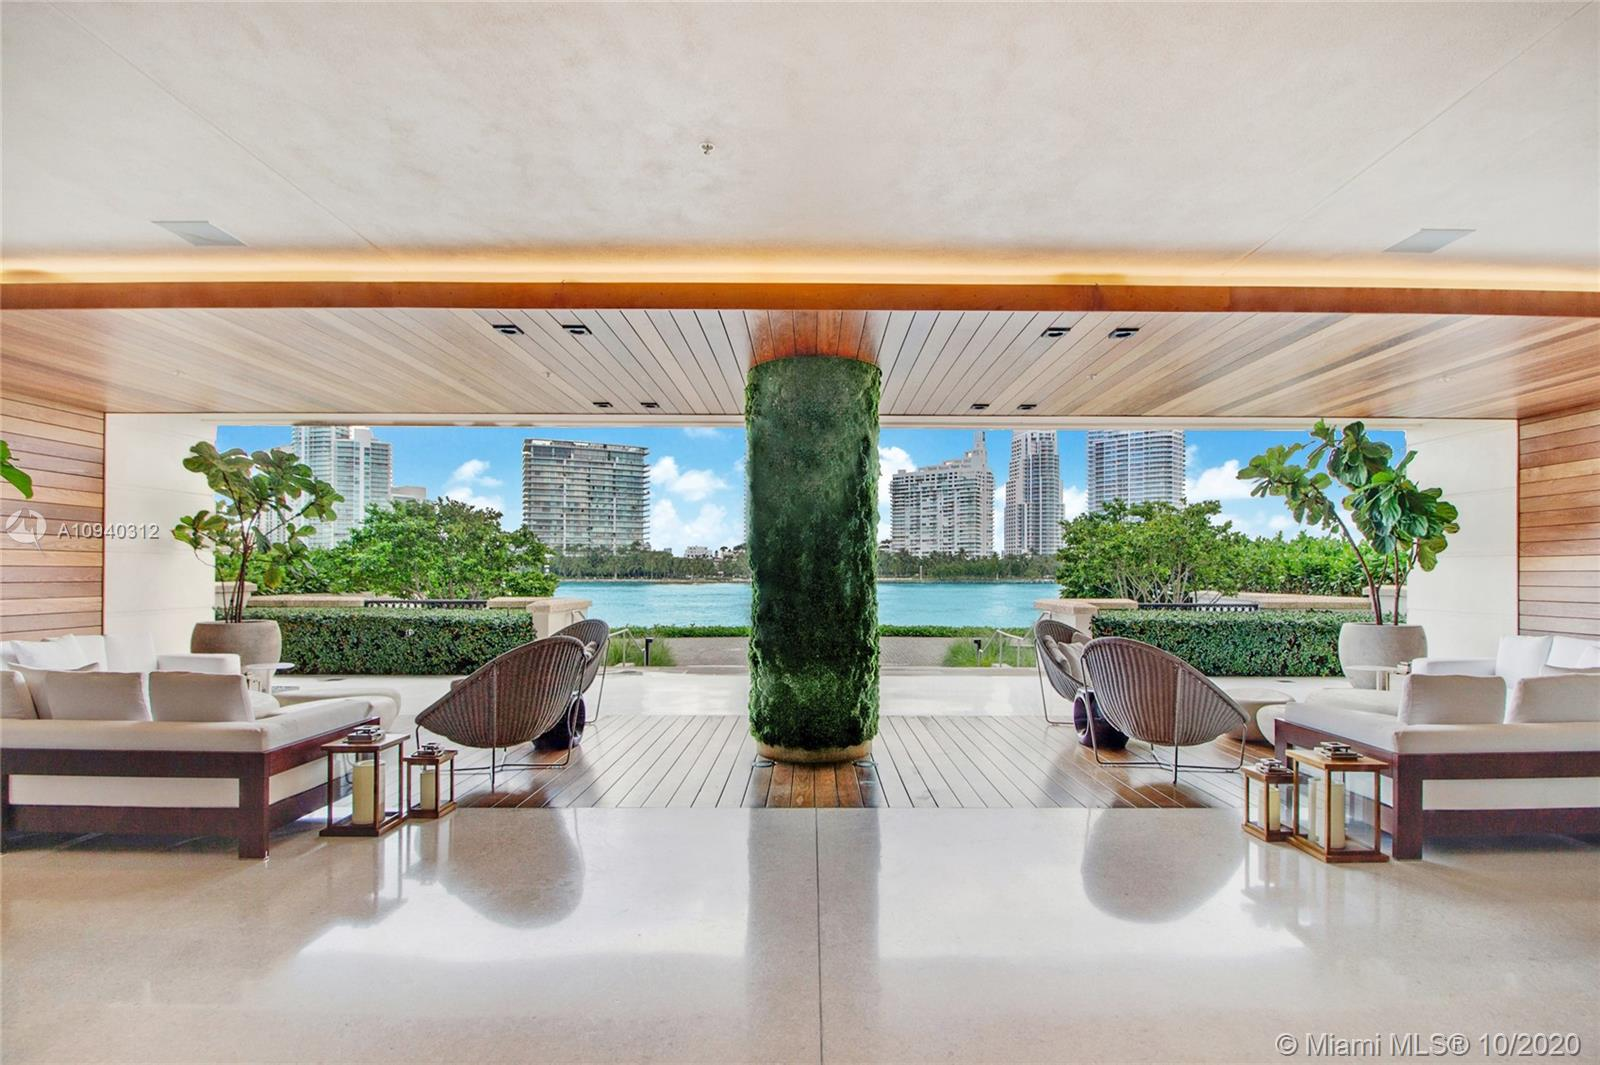 7085 Fisher Island Dr #7085 Property Photo 1